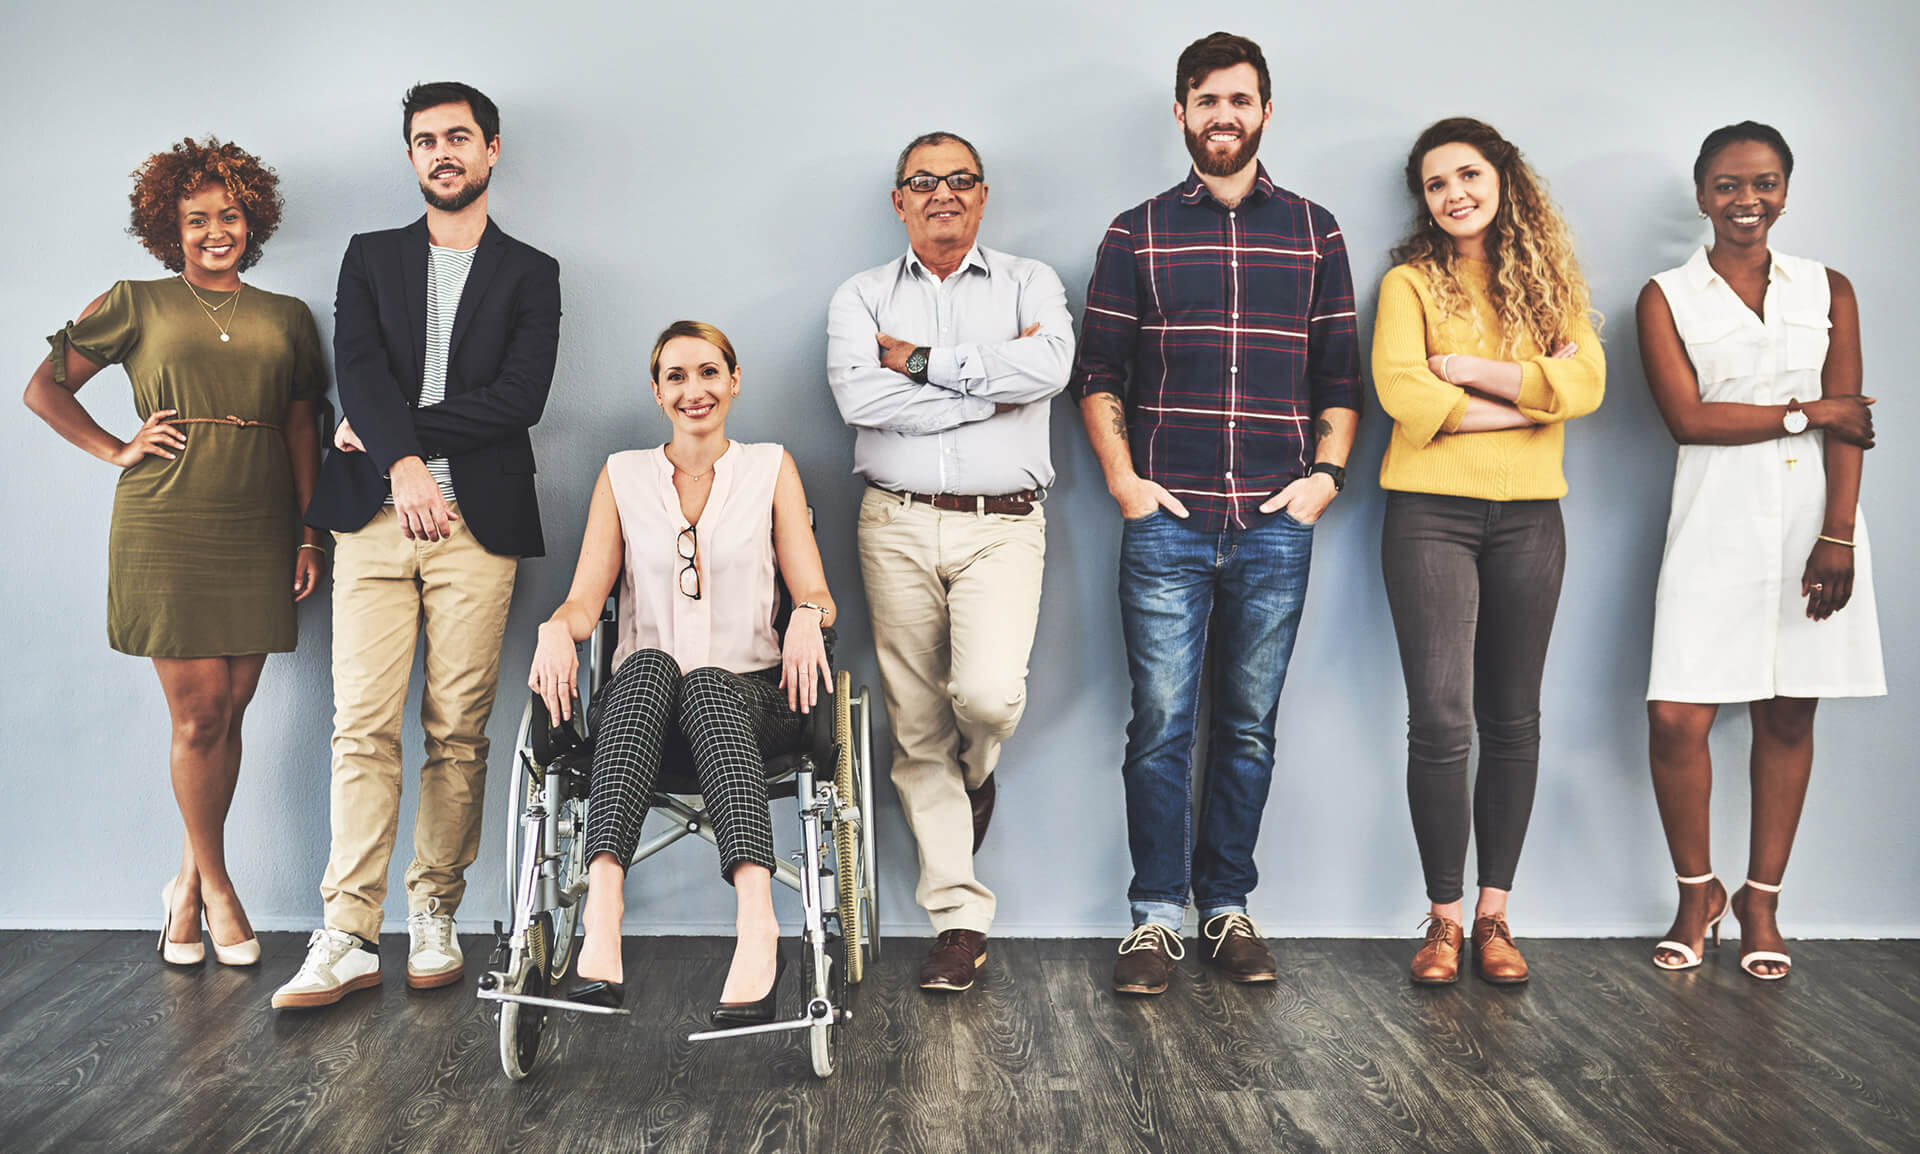 Representative image of mixed ability people